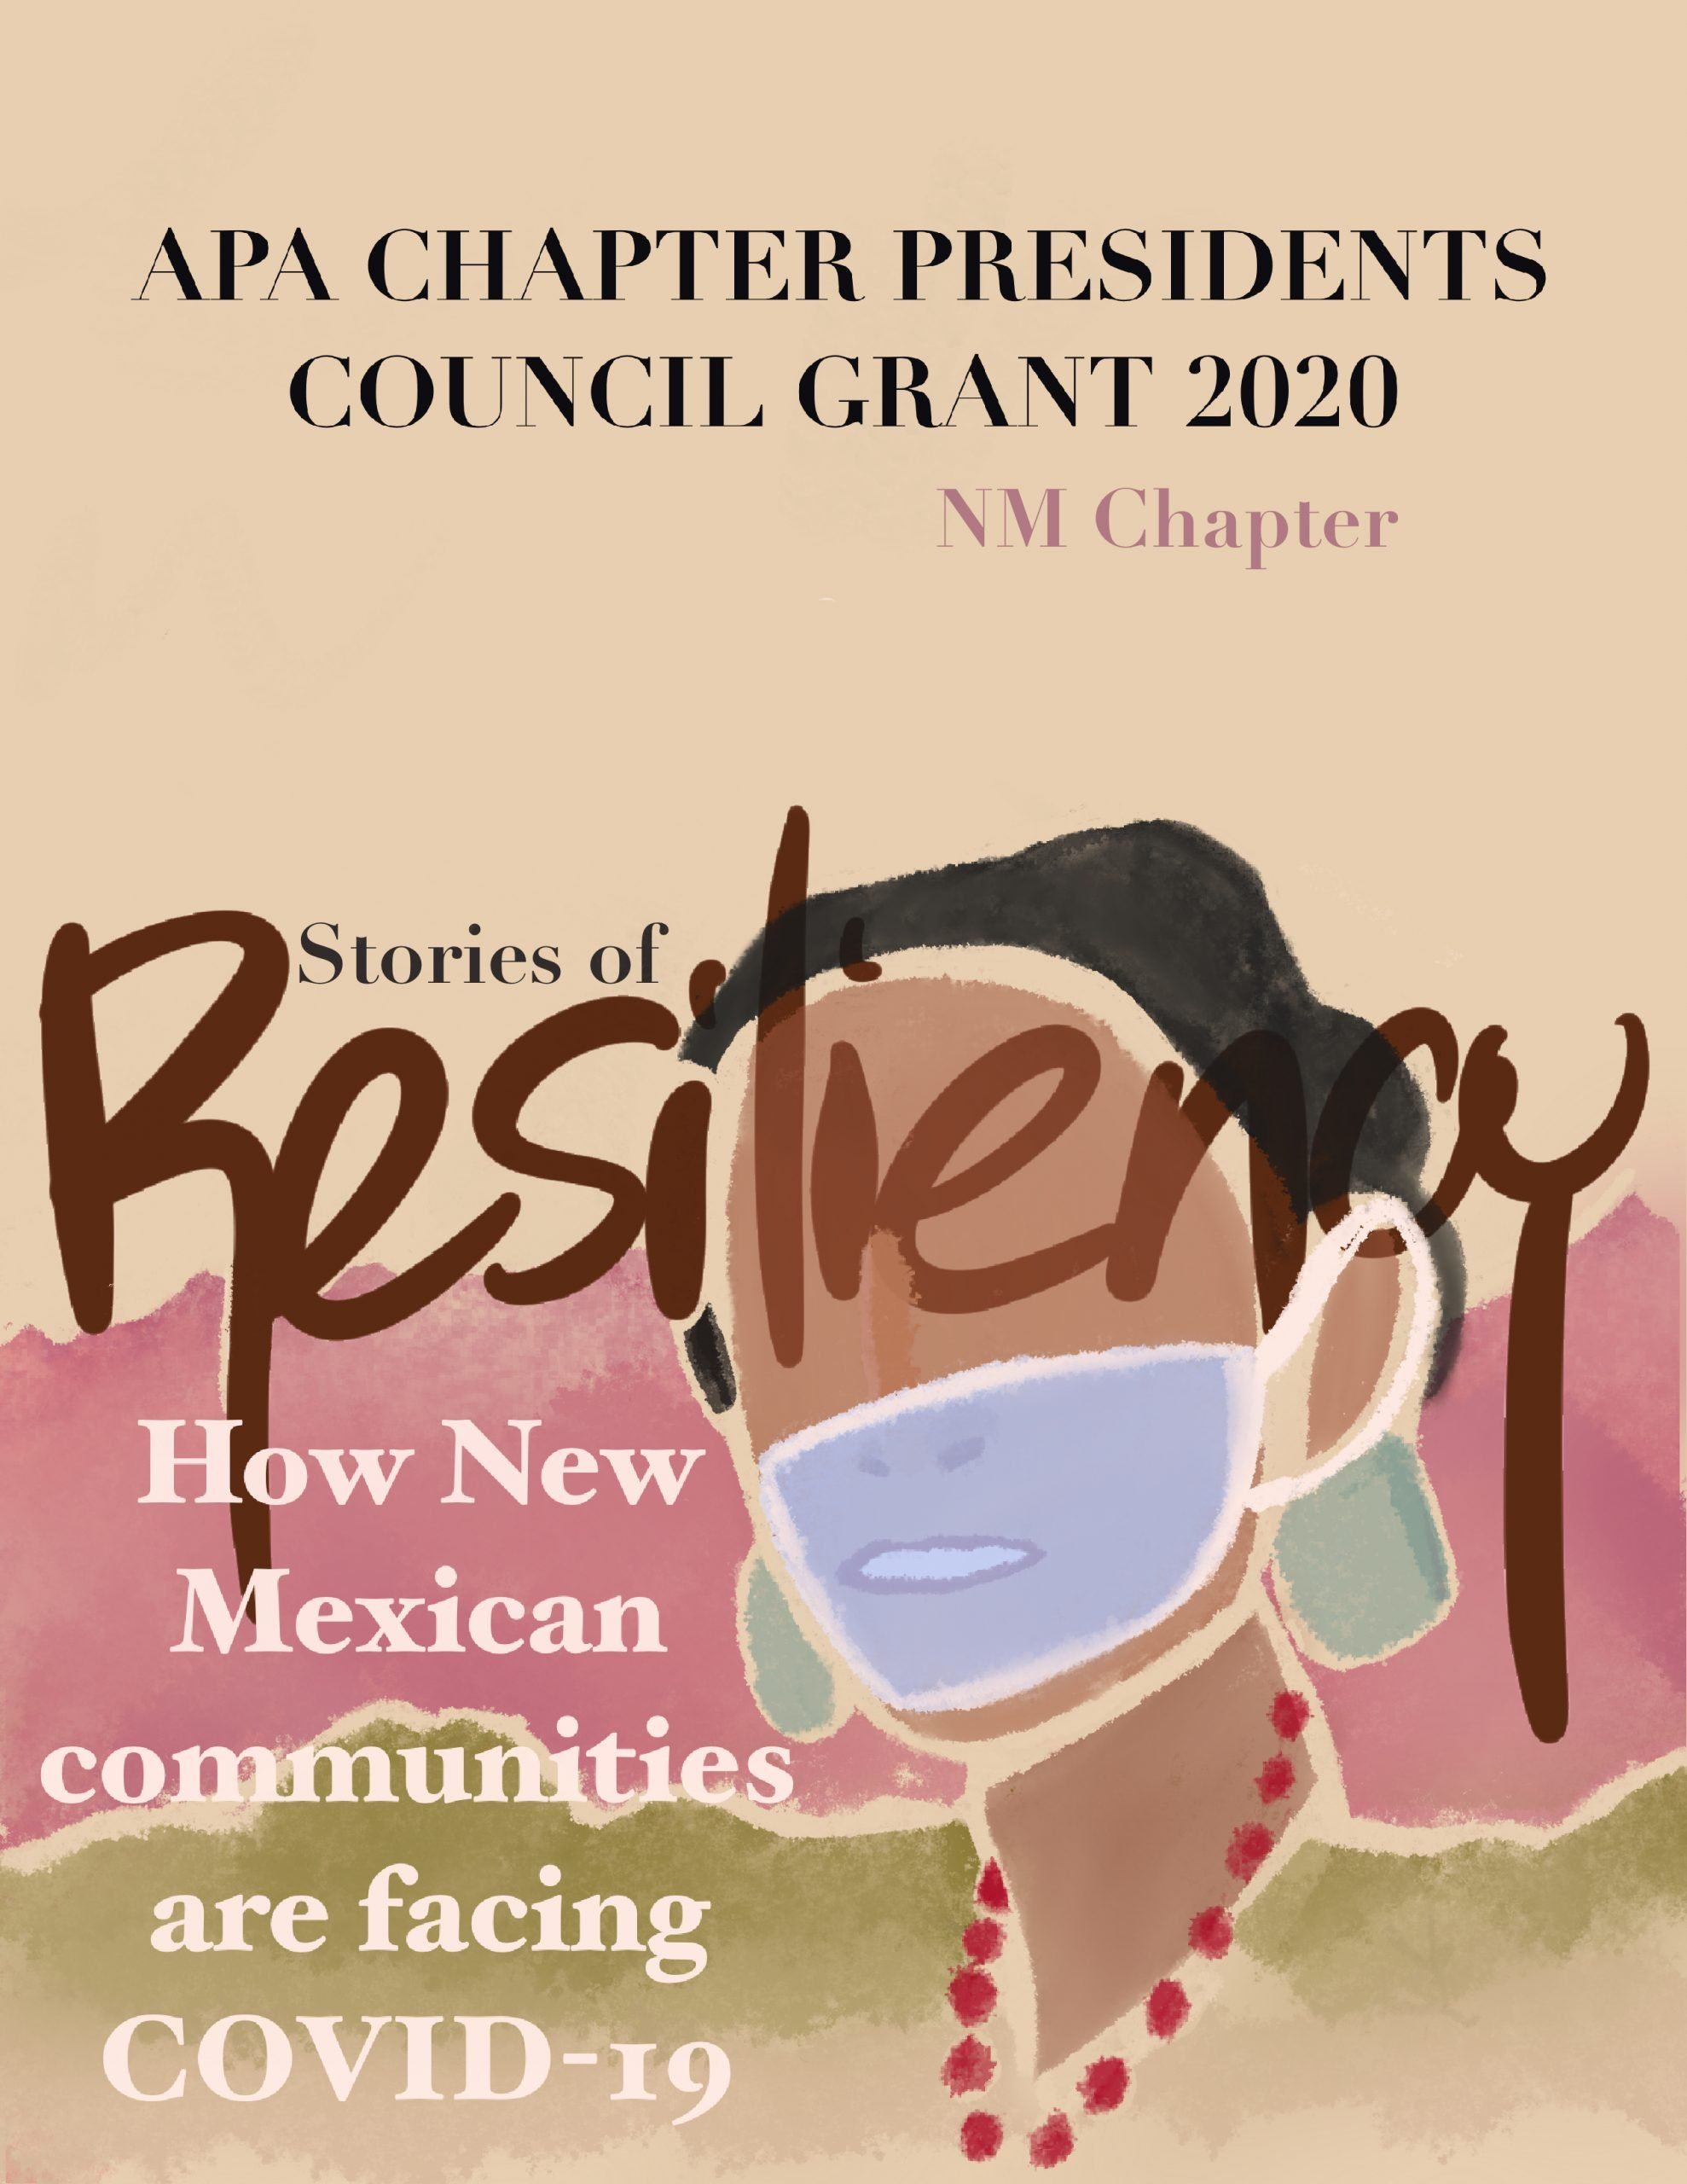 Call for Paid Student Researchers/Community Organizers/Storytellers (APA-NM)